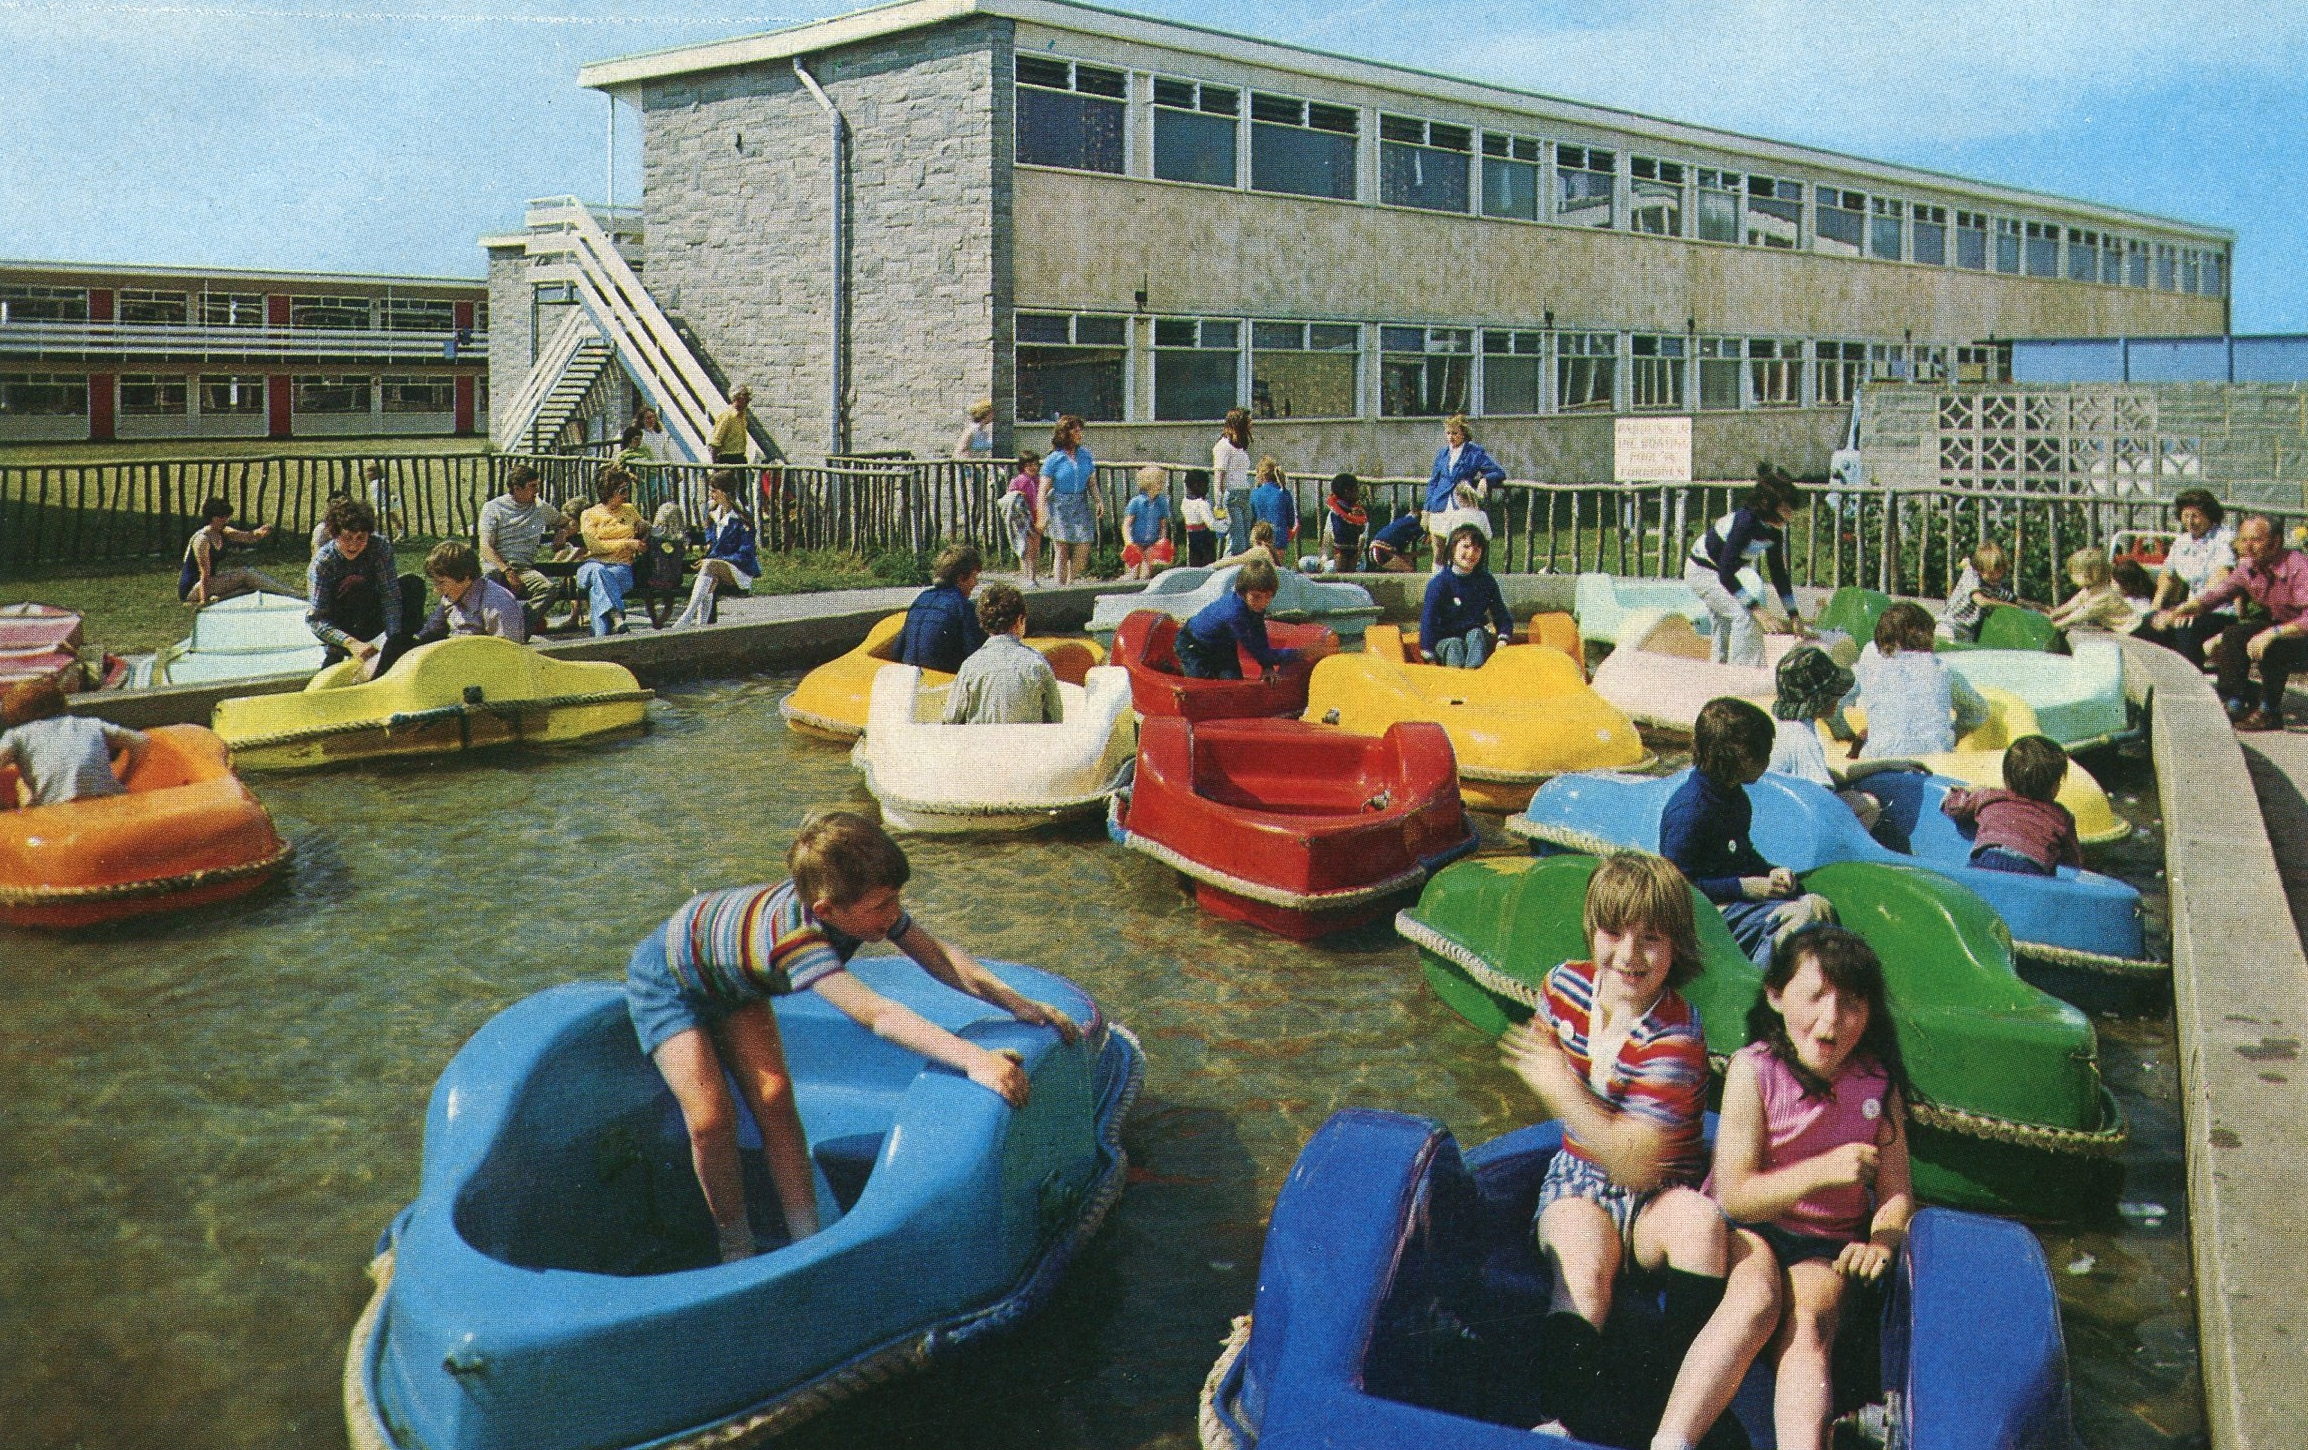 Pontins Holiday Camp